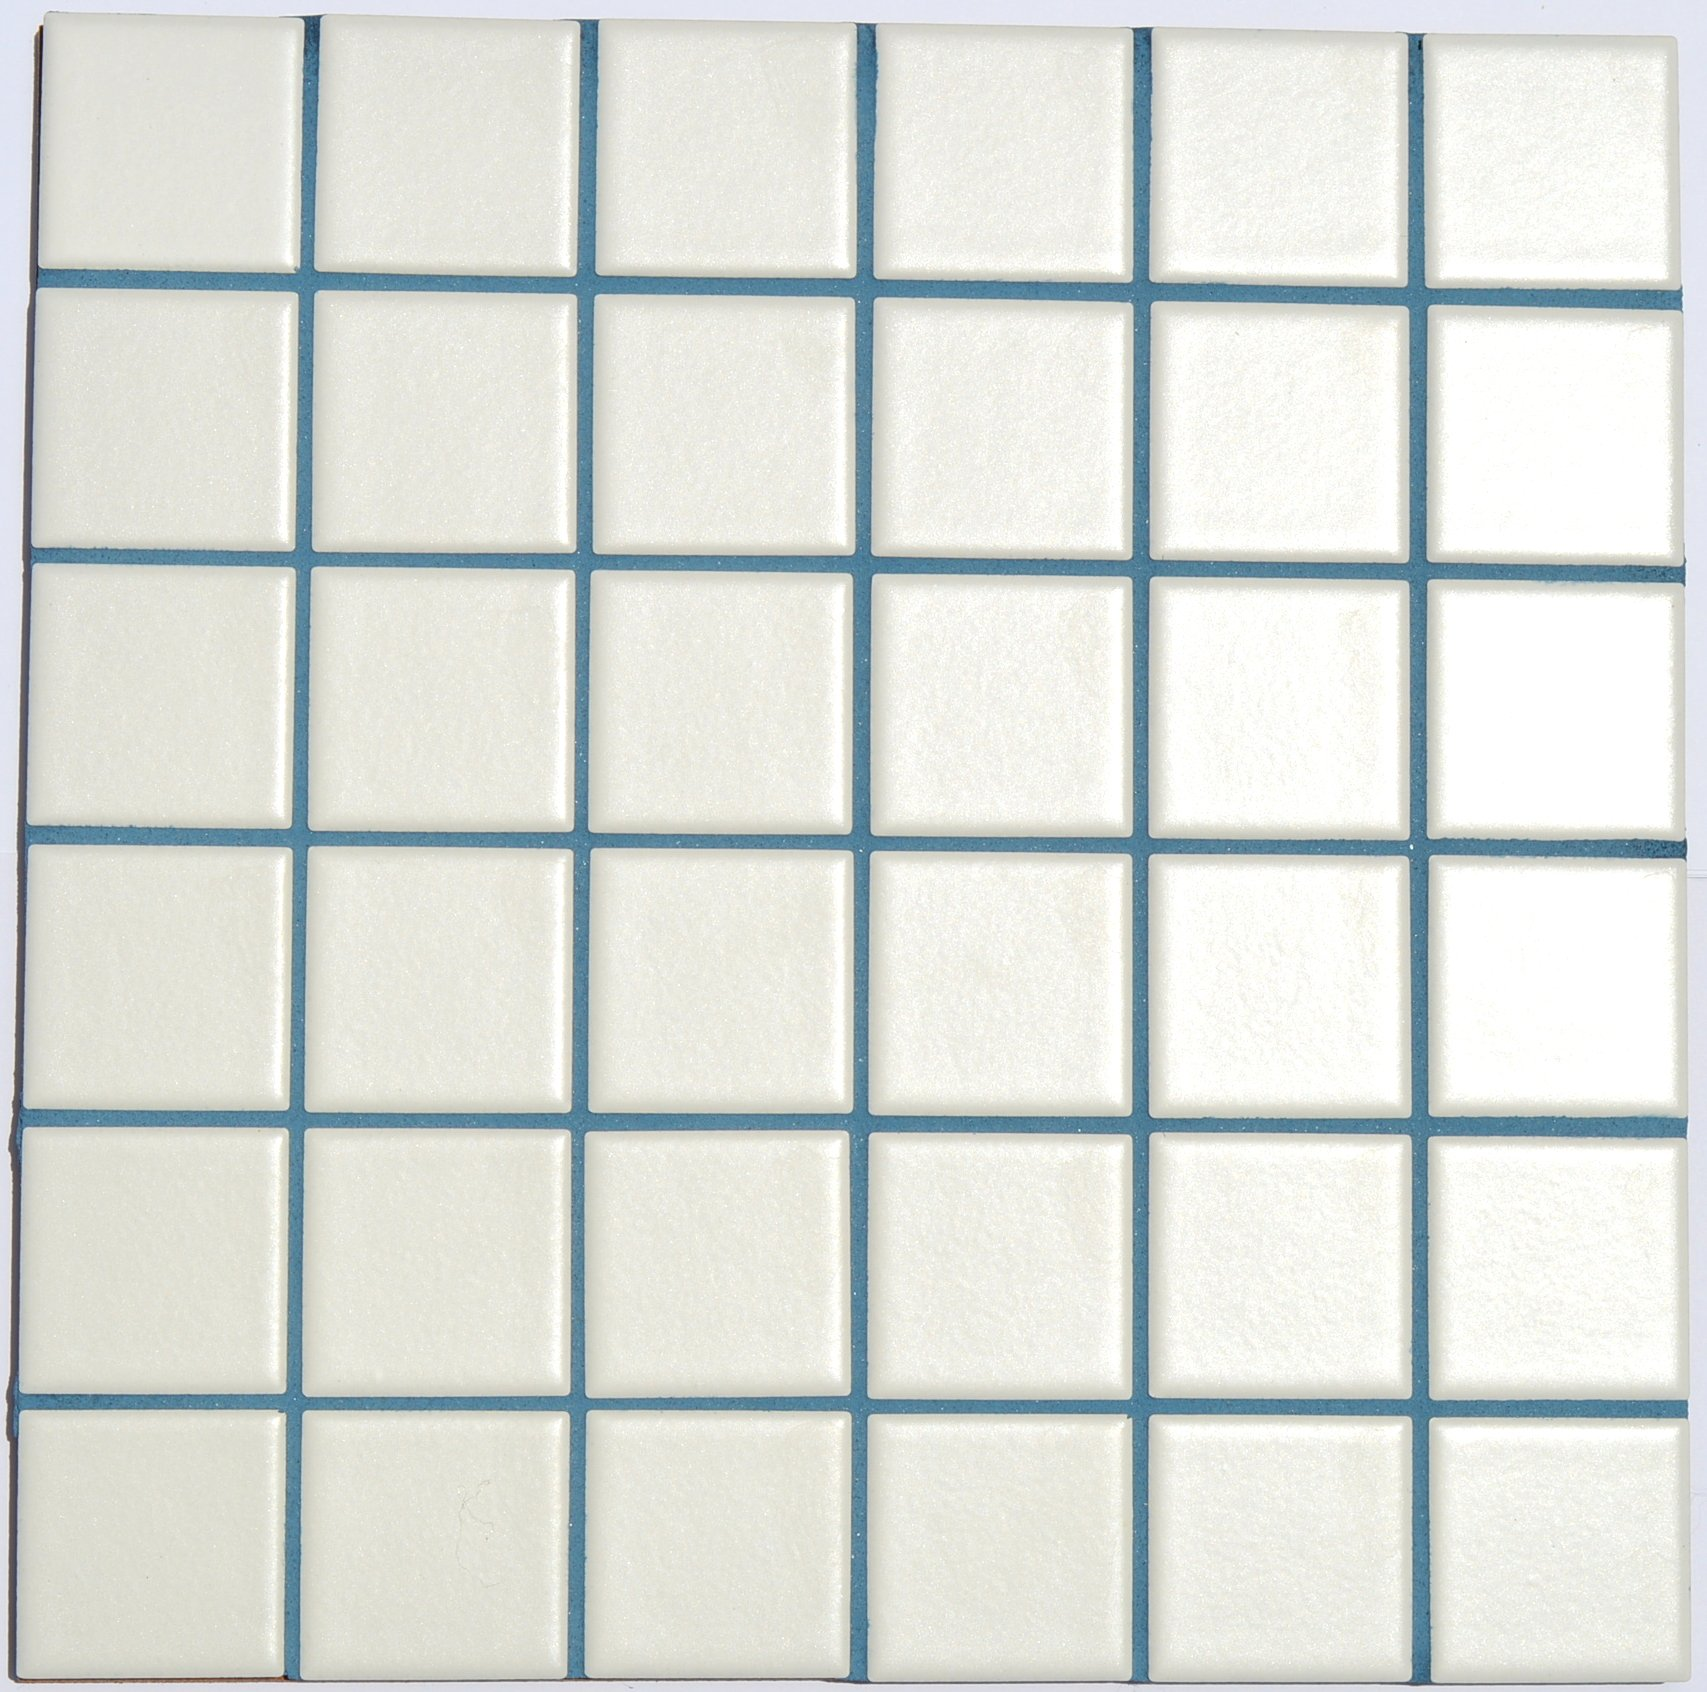 Williamsburg Blue Sanded Tile Grout - 5 lbs